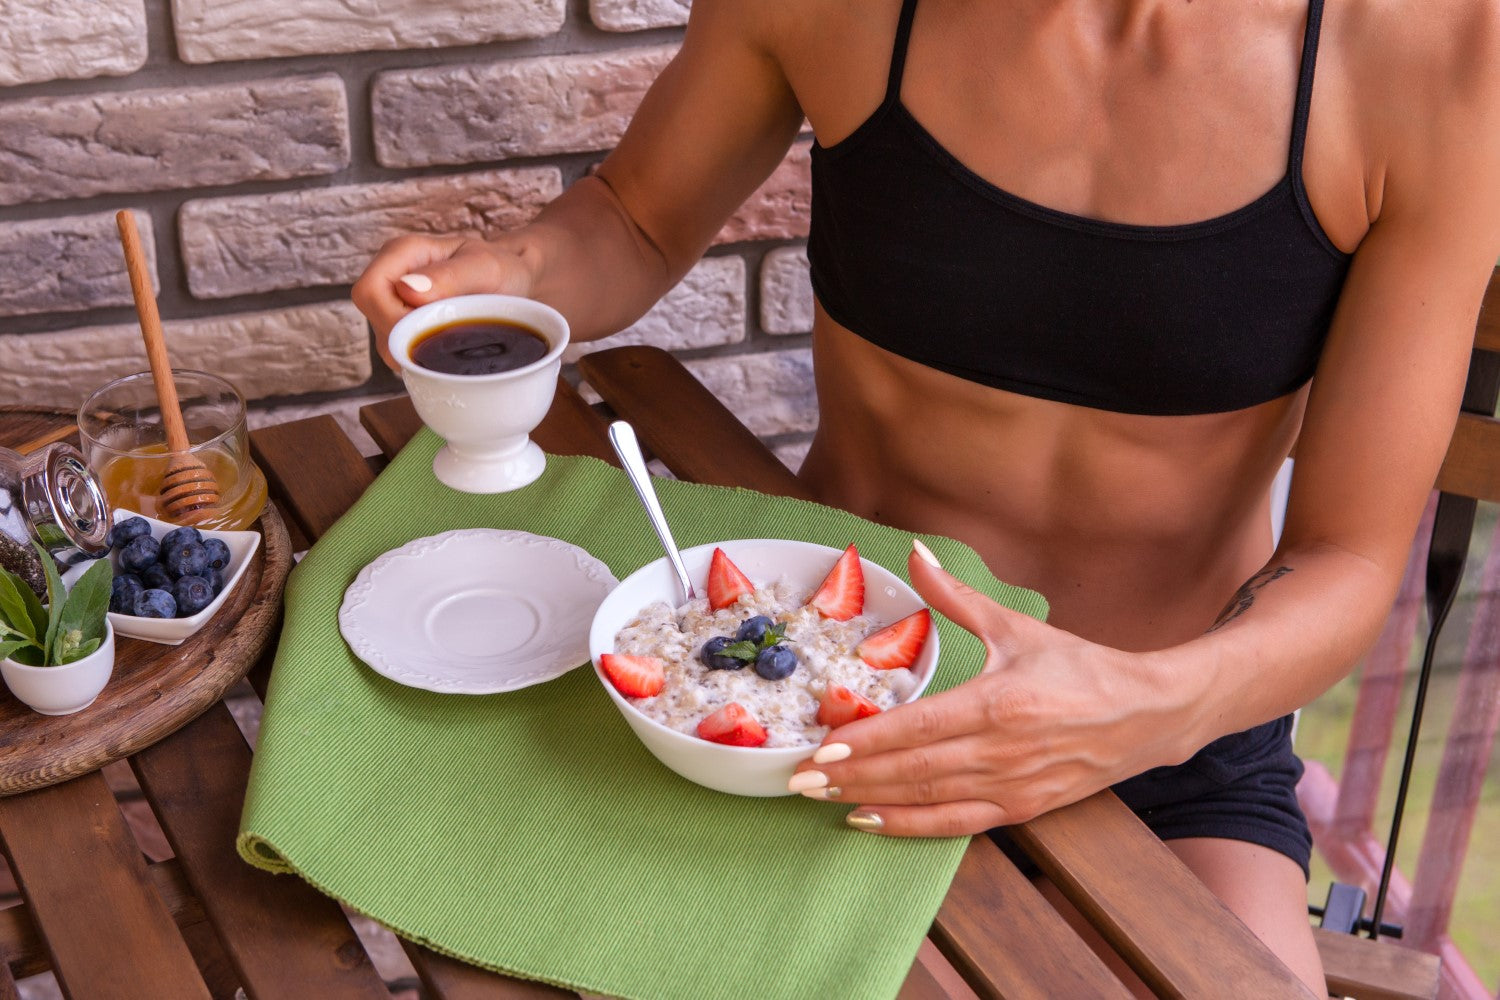 lady with fit body eating healthy diet with coffee